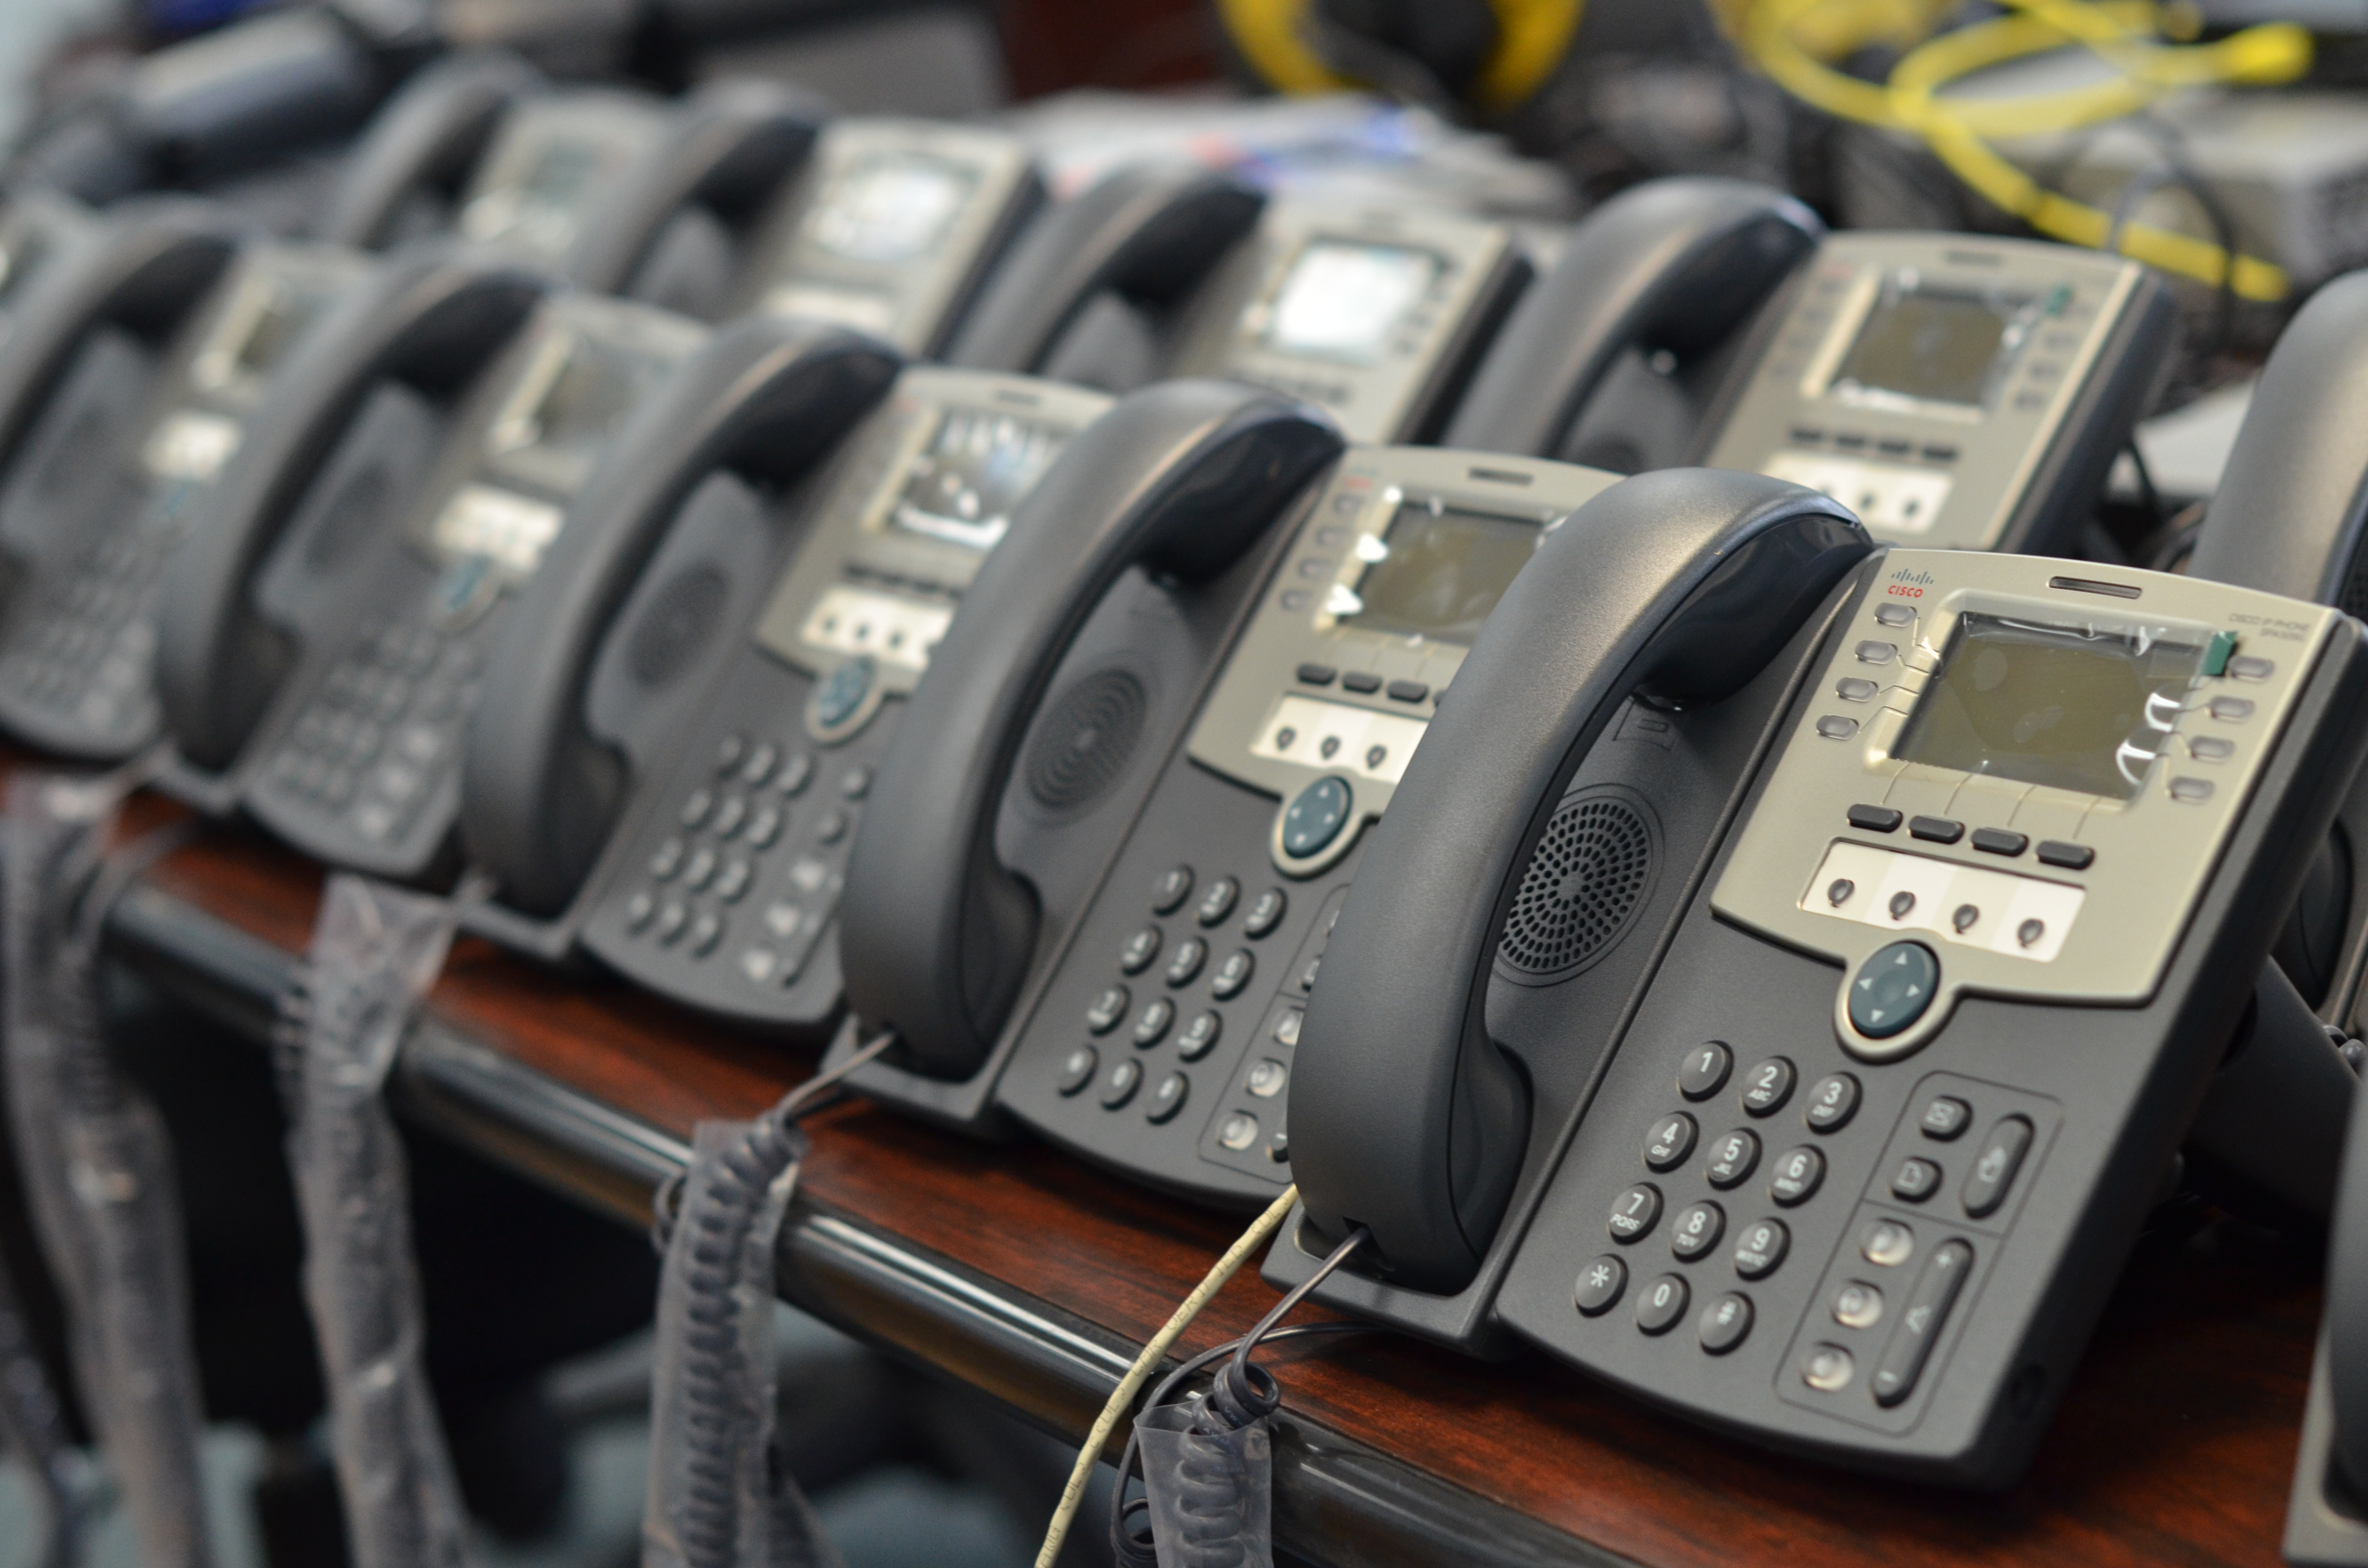 Cisco Voice Over Ip Phone Systems Don T Have To Break The